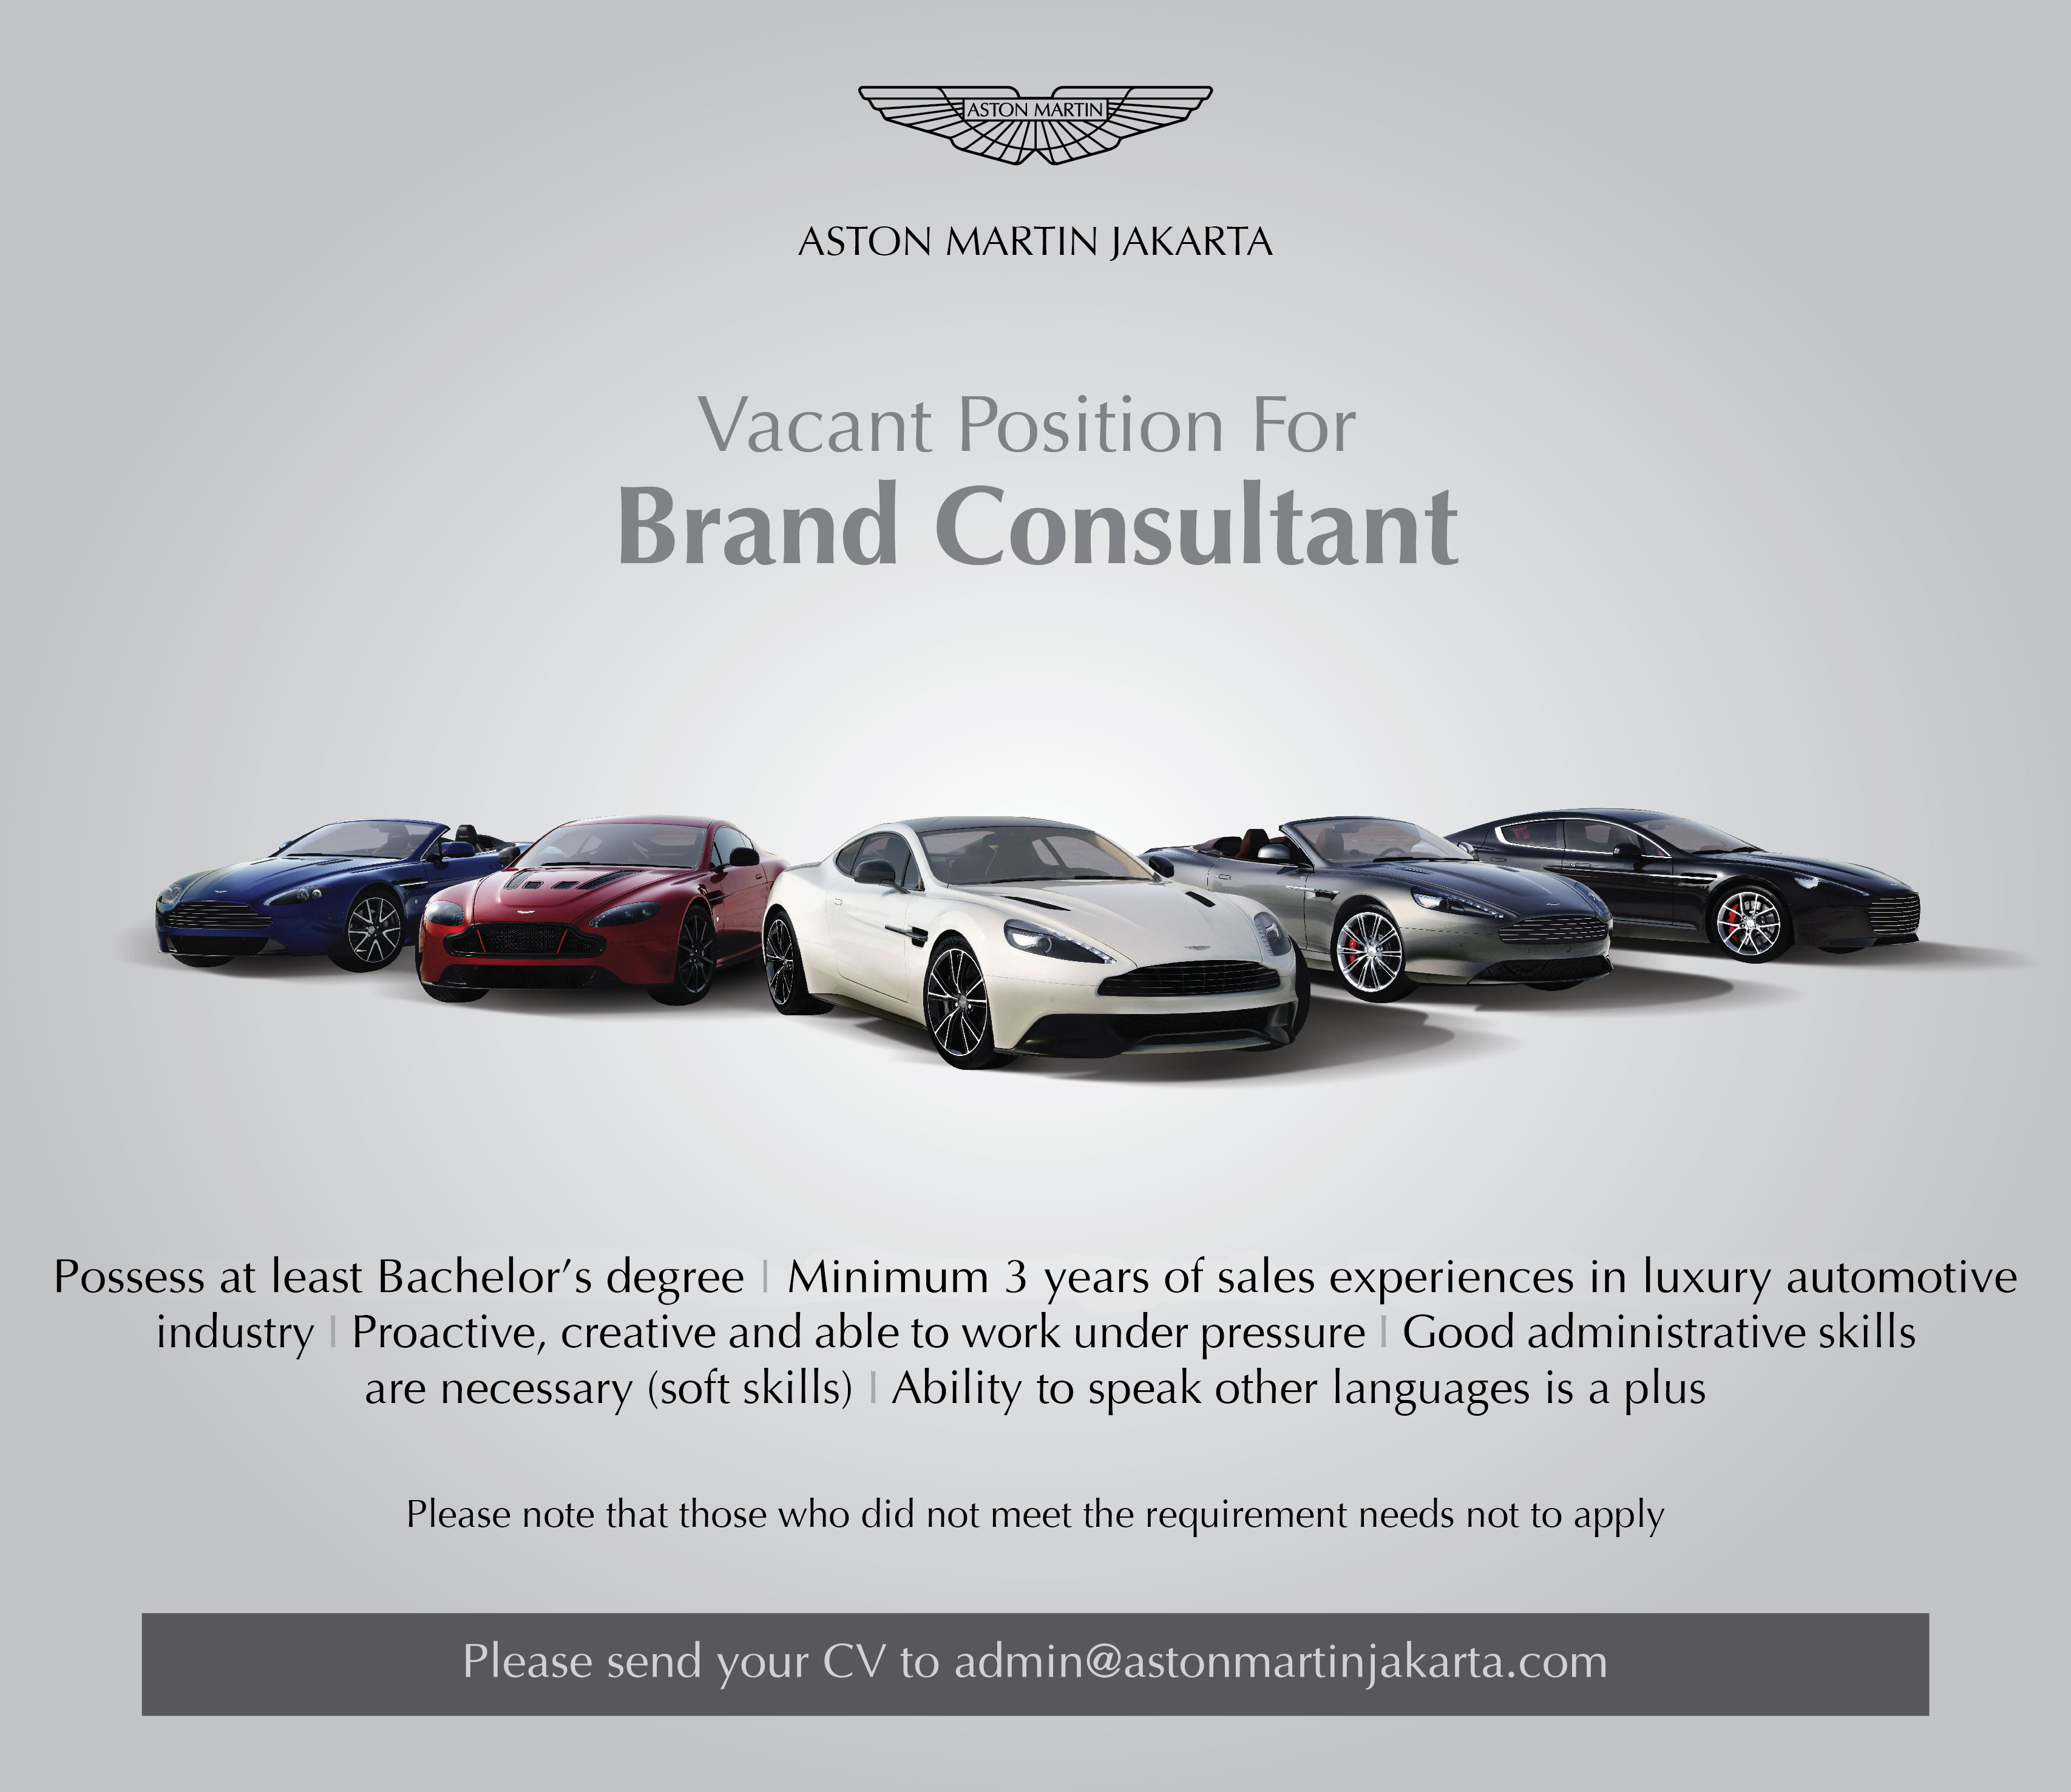 careers | aston martin jakarta - official aston martin dealer